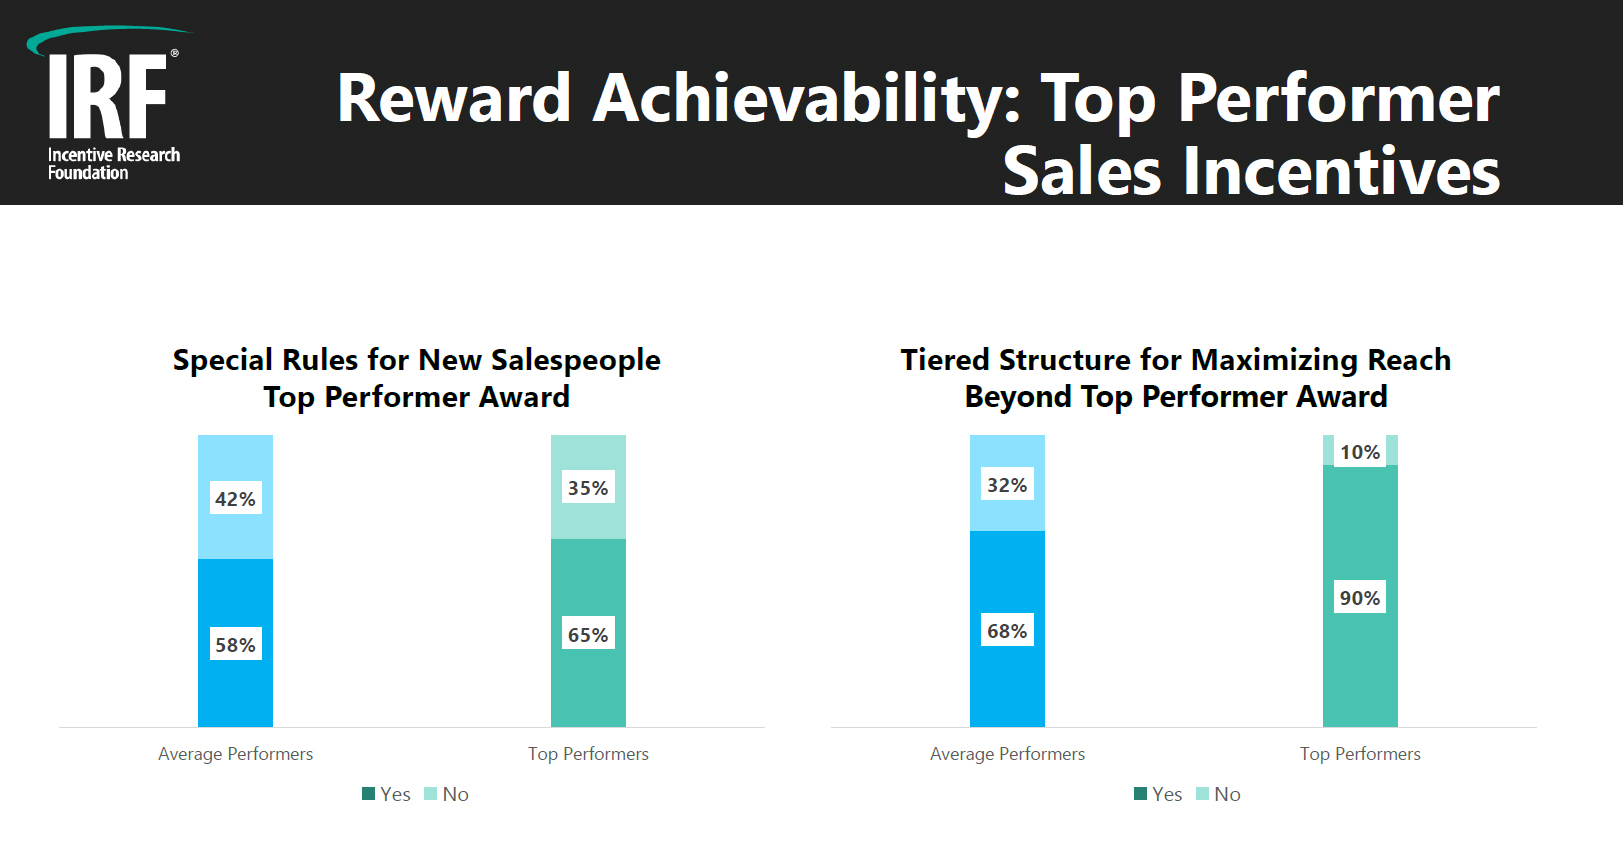 Top Performer Sales Incentives